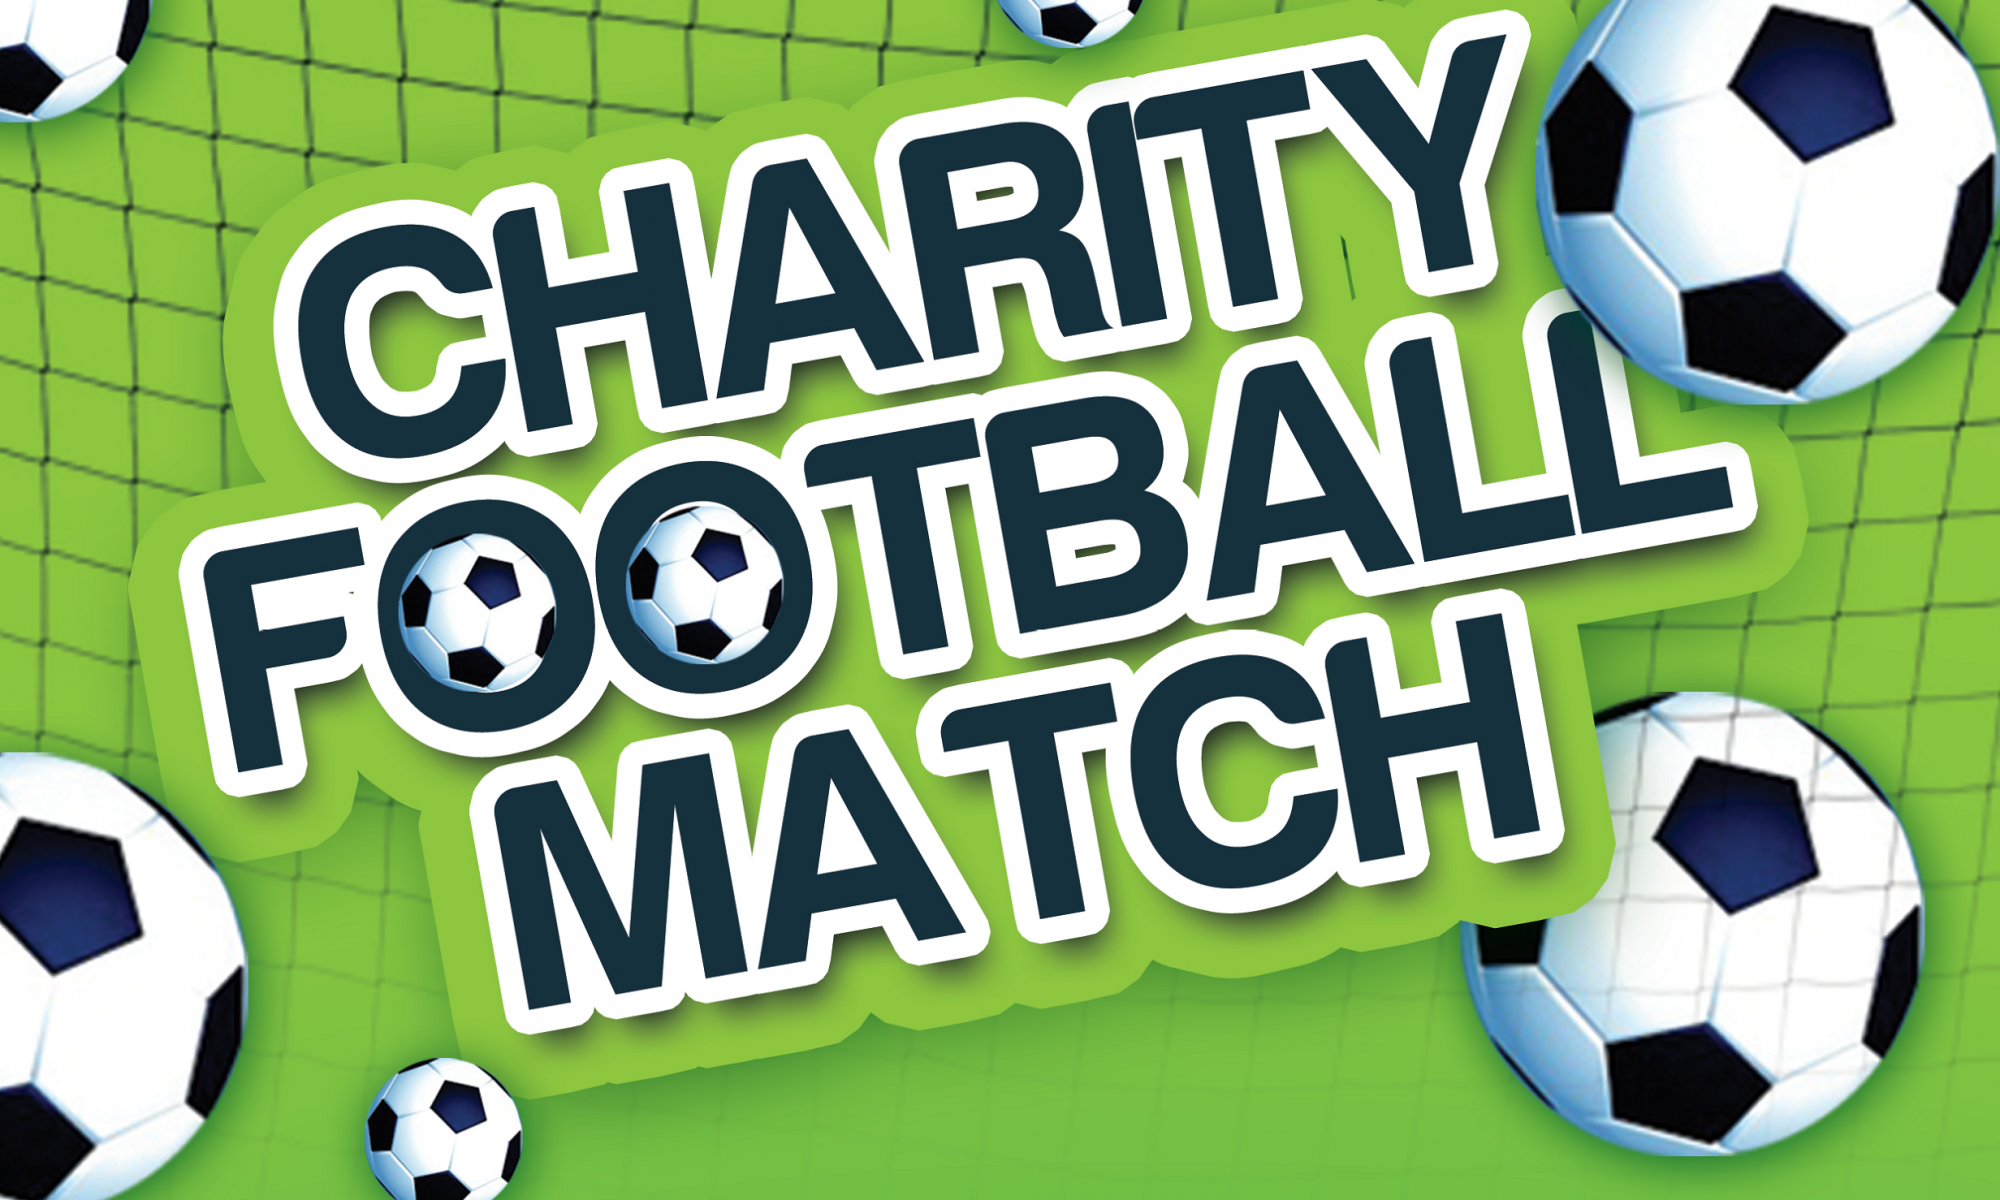 charity-football-match.png